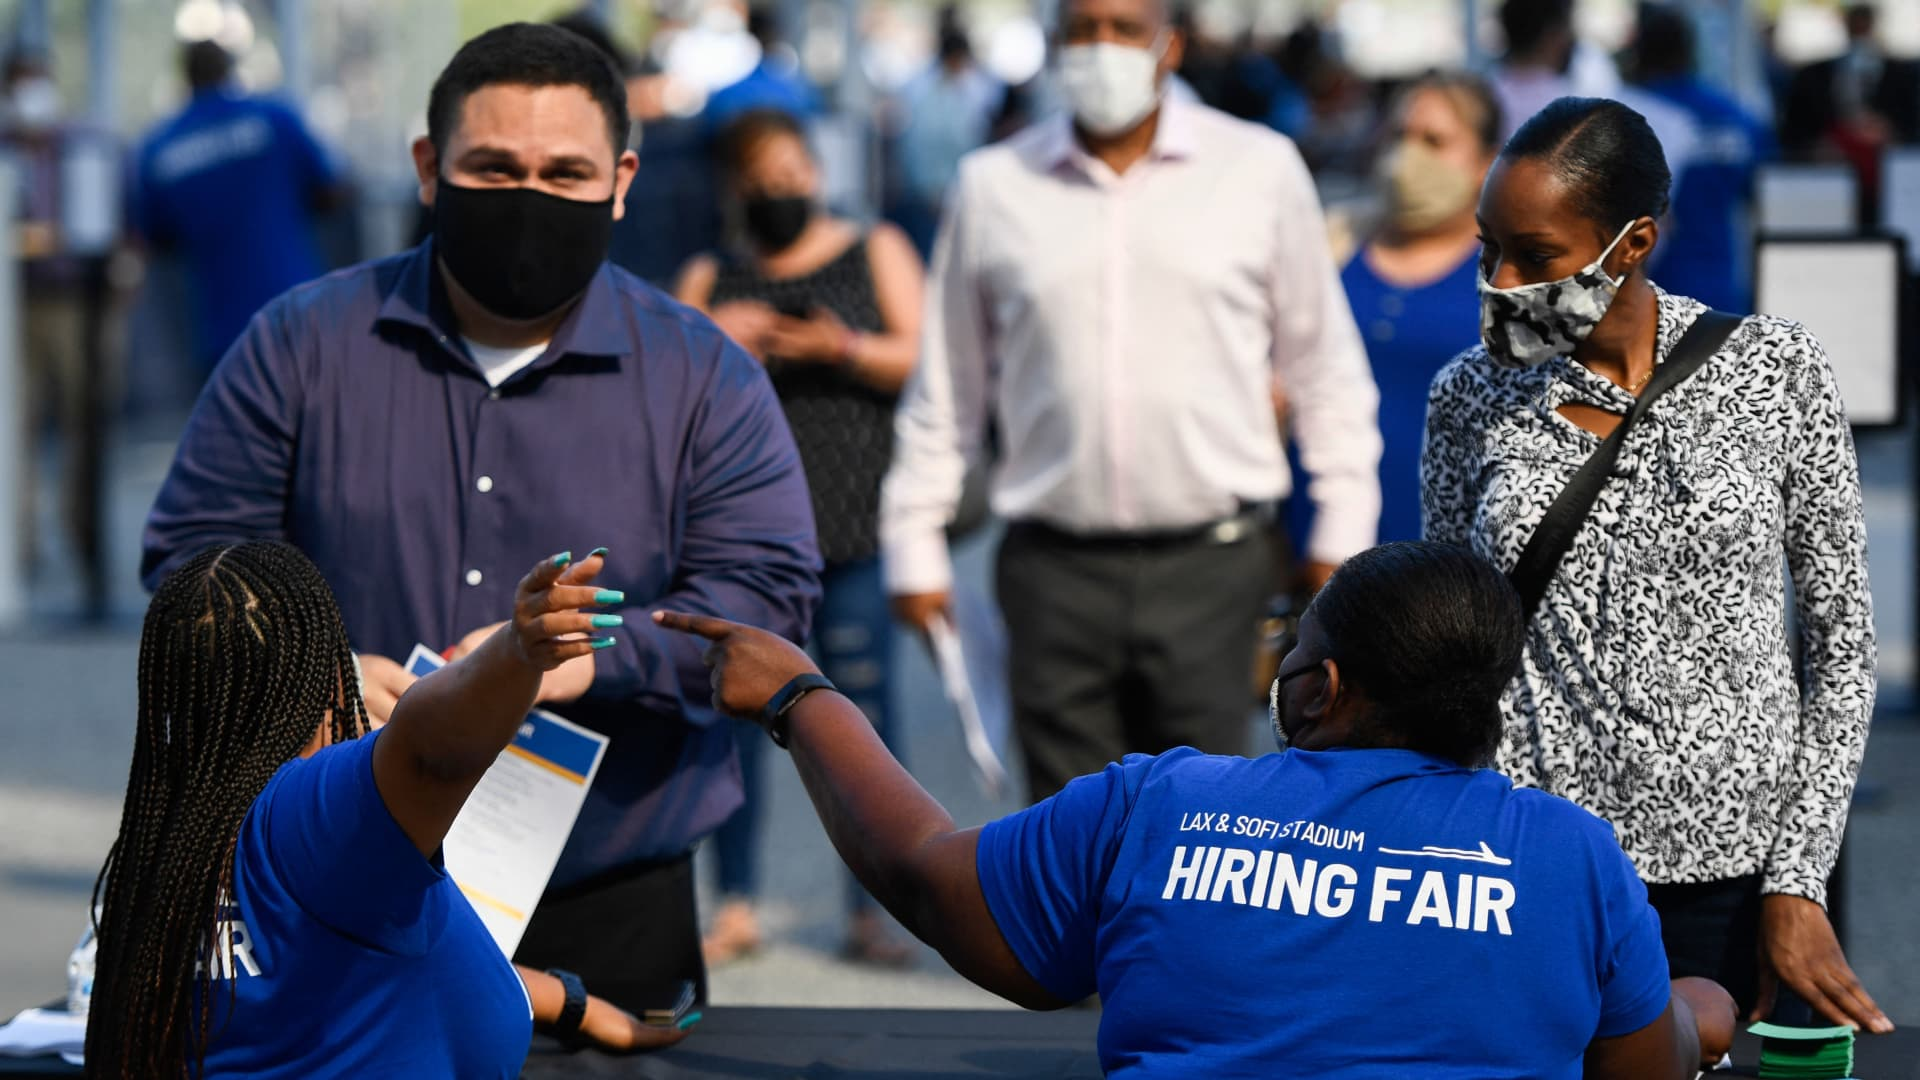 People receive information as they attend a job fair at SoFi Stadium on Sept. 9, 2021, in Inglewood, California.